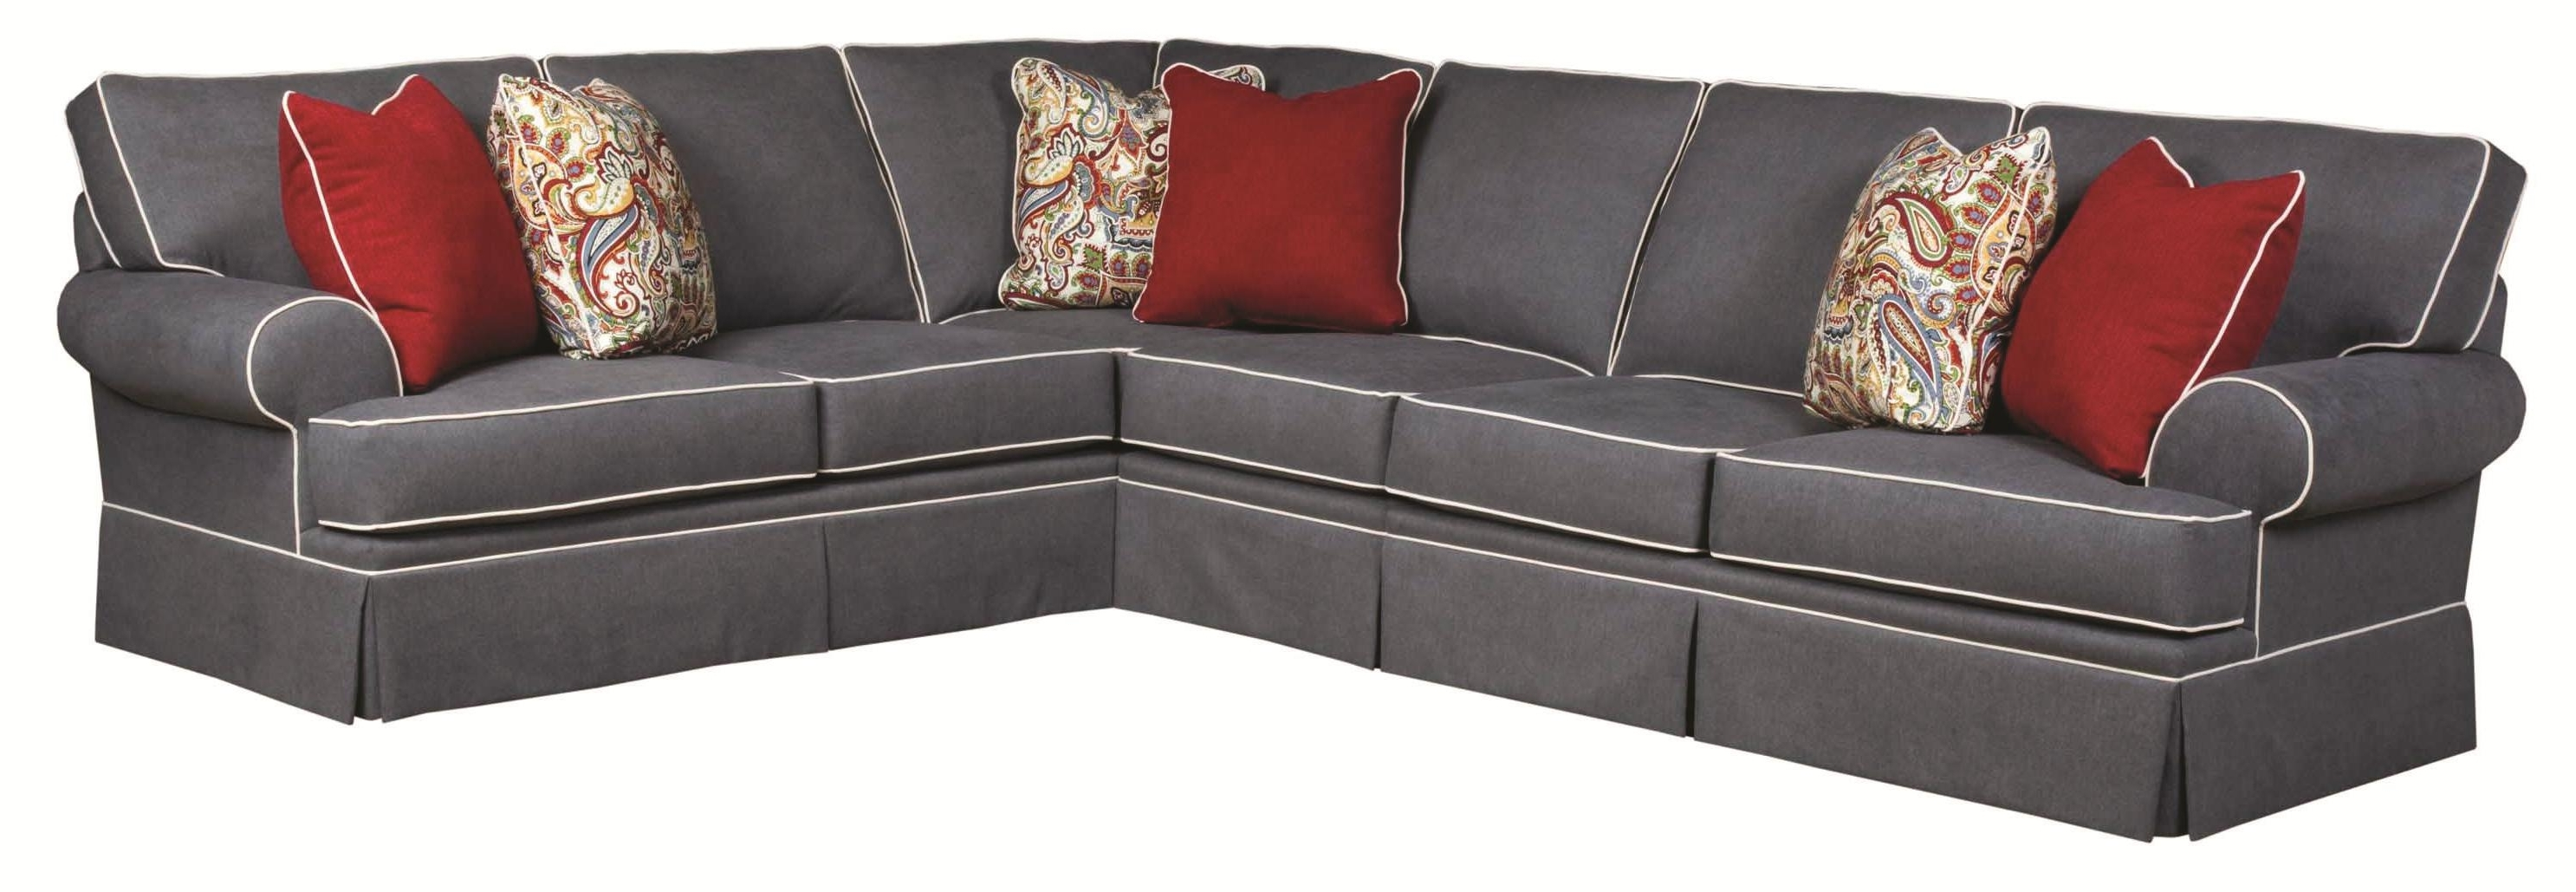 Most Up To Date Broyhill Sectional Sofas Regarding Broyhill Furniture Emily Traditional 3 Piece Sectional Sofa With (View 6 of 15)